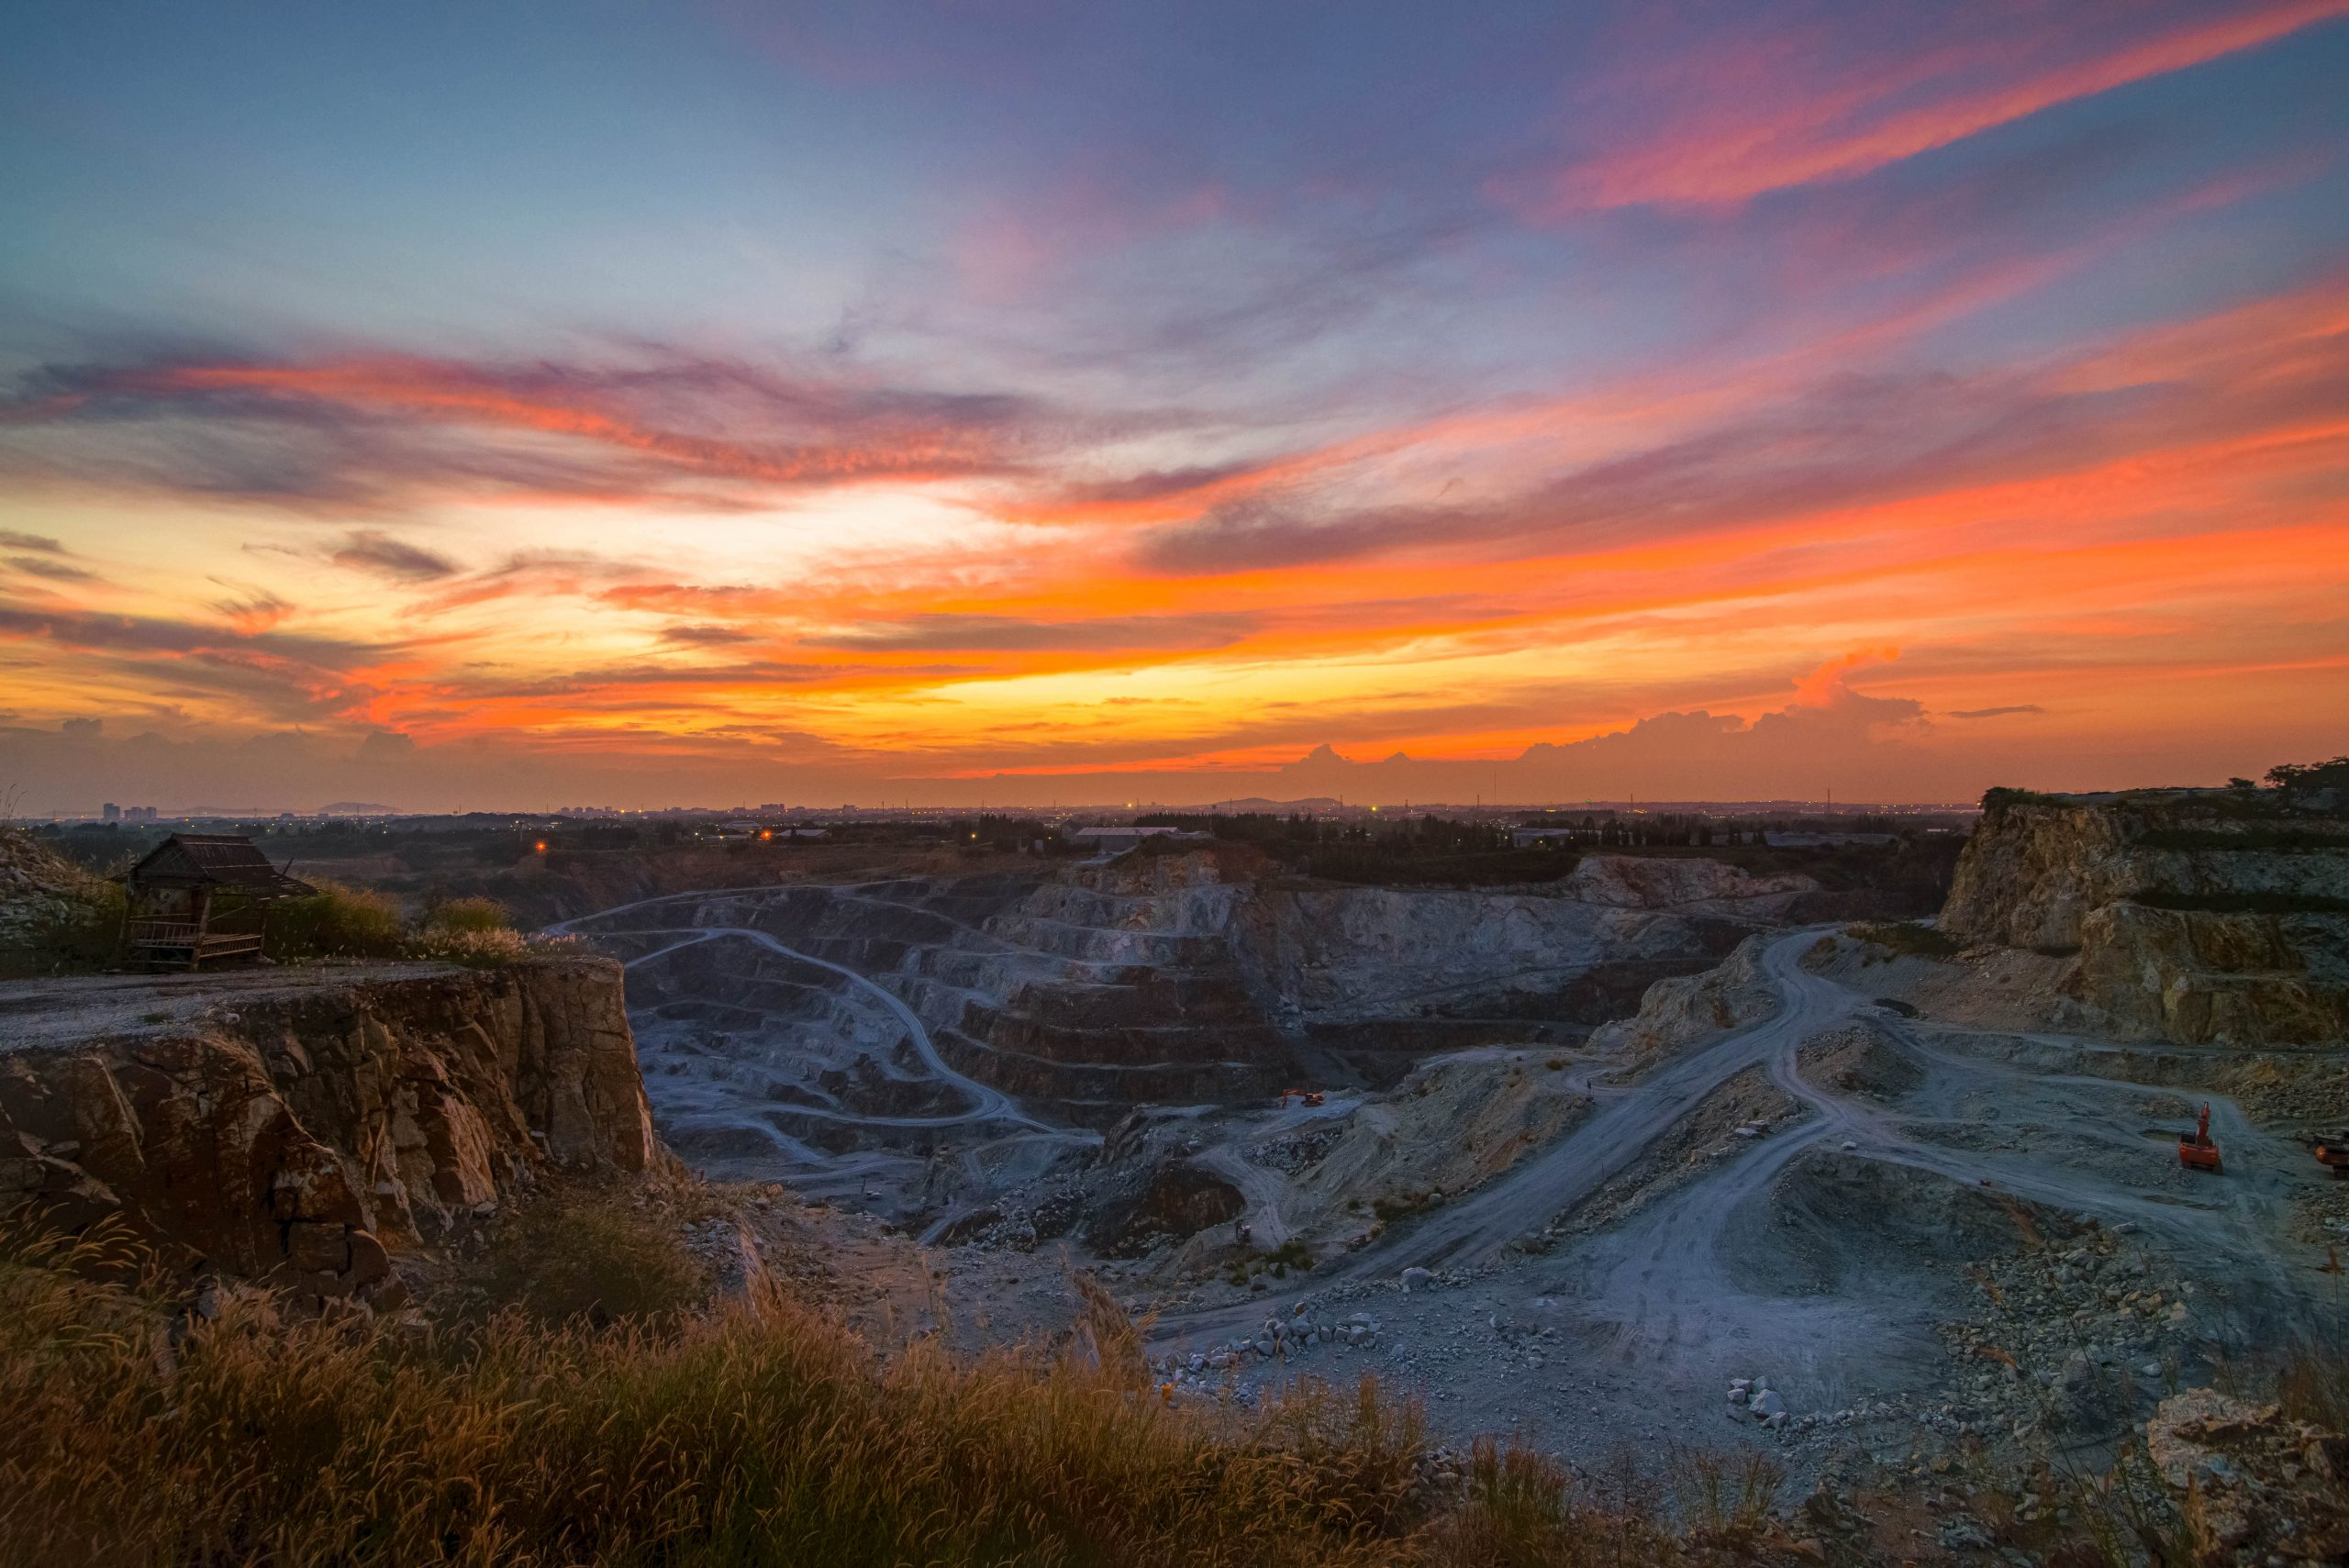 K2fly buys Decipher to extend its tailings and rehabilitation software suite